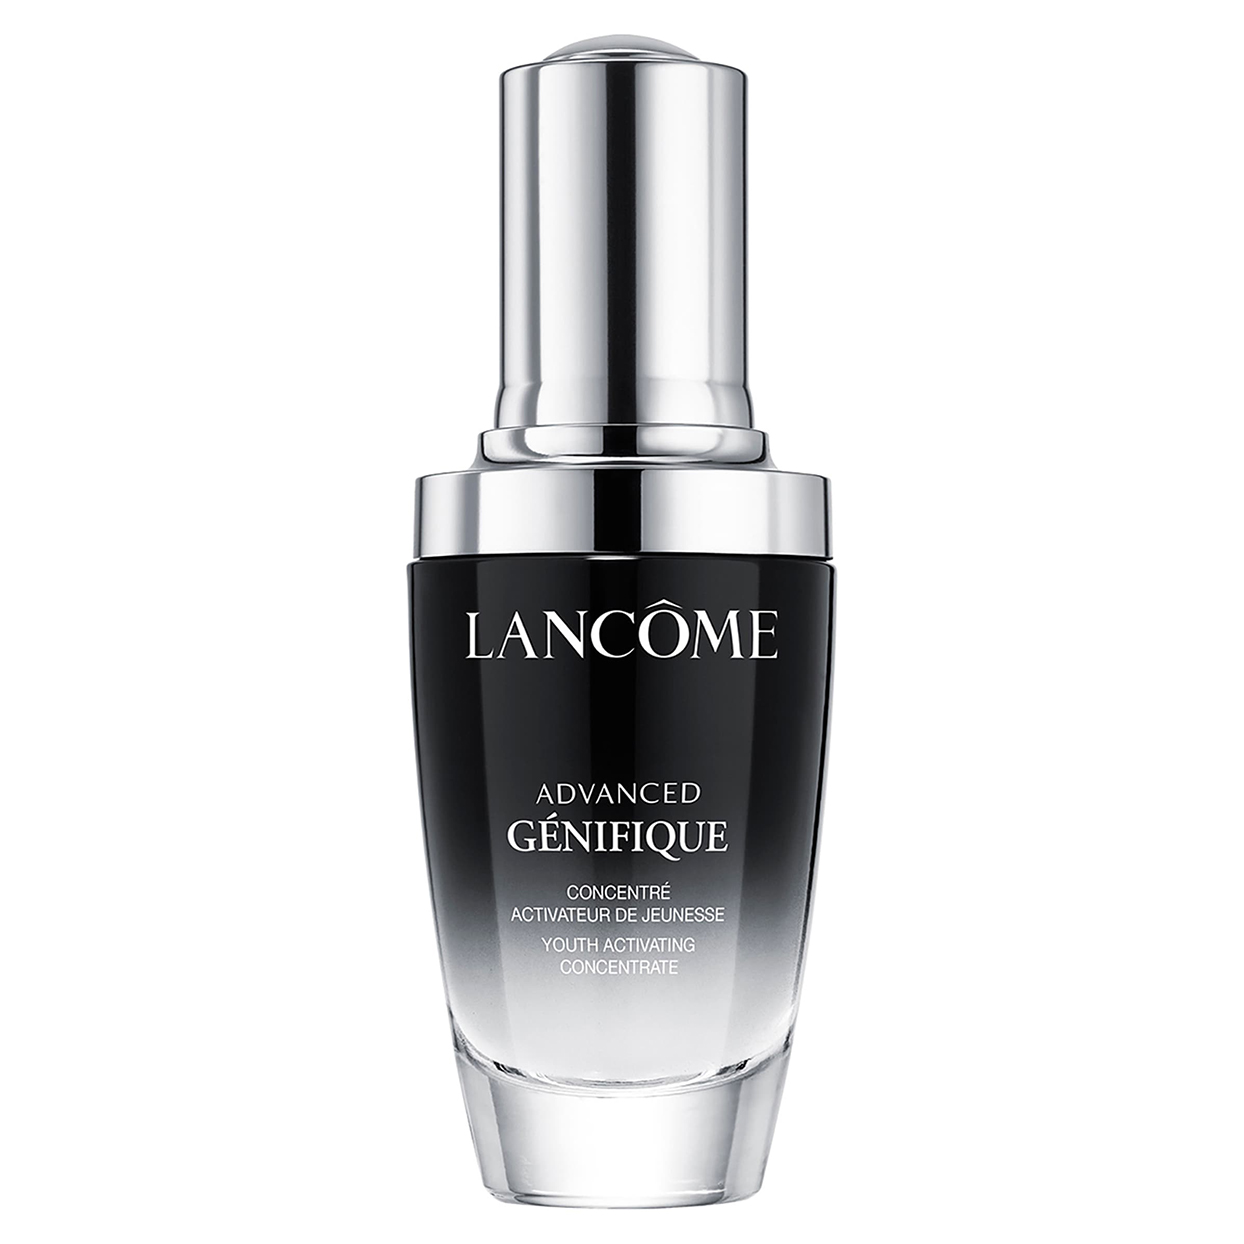 Lancôme Advanced Génfique Serum